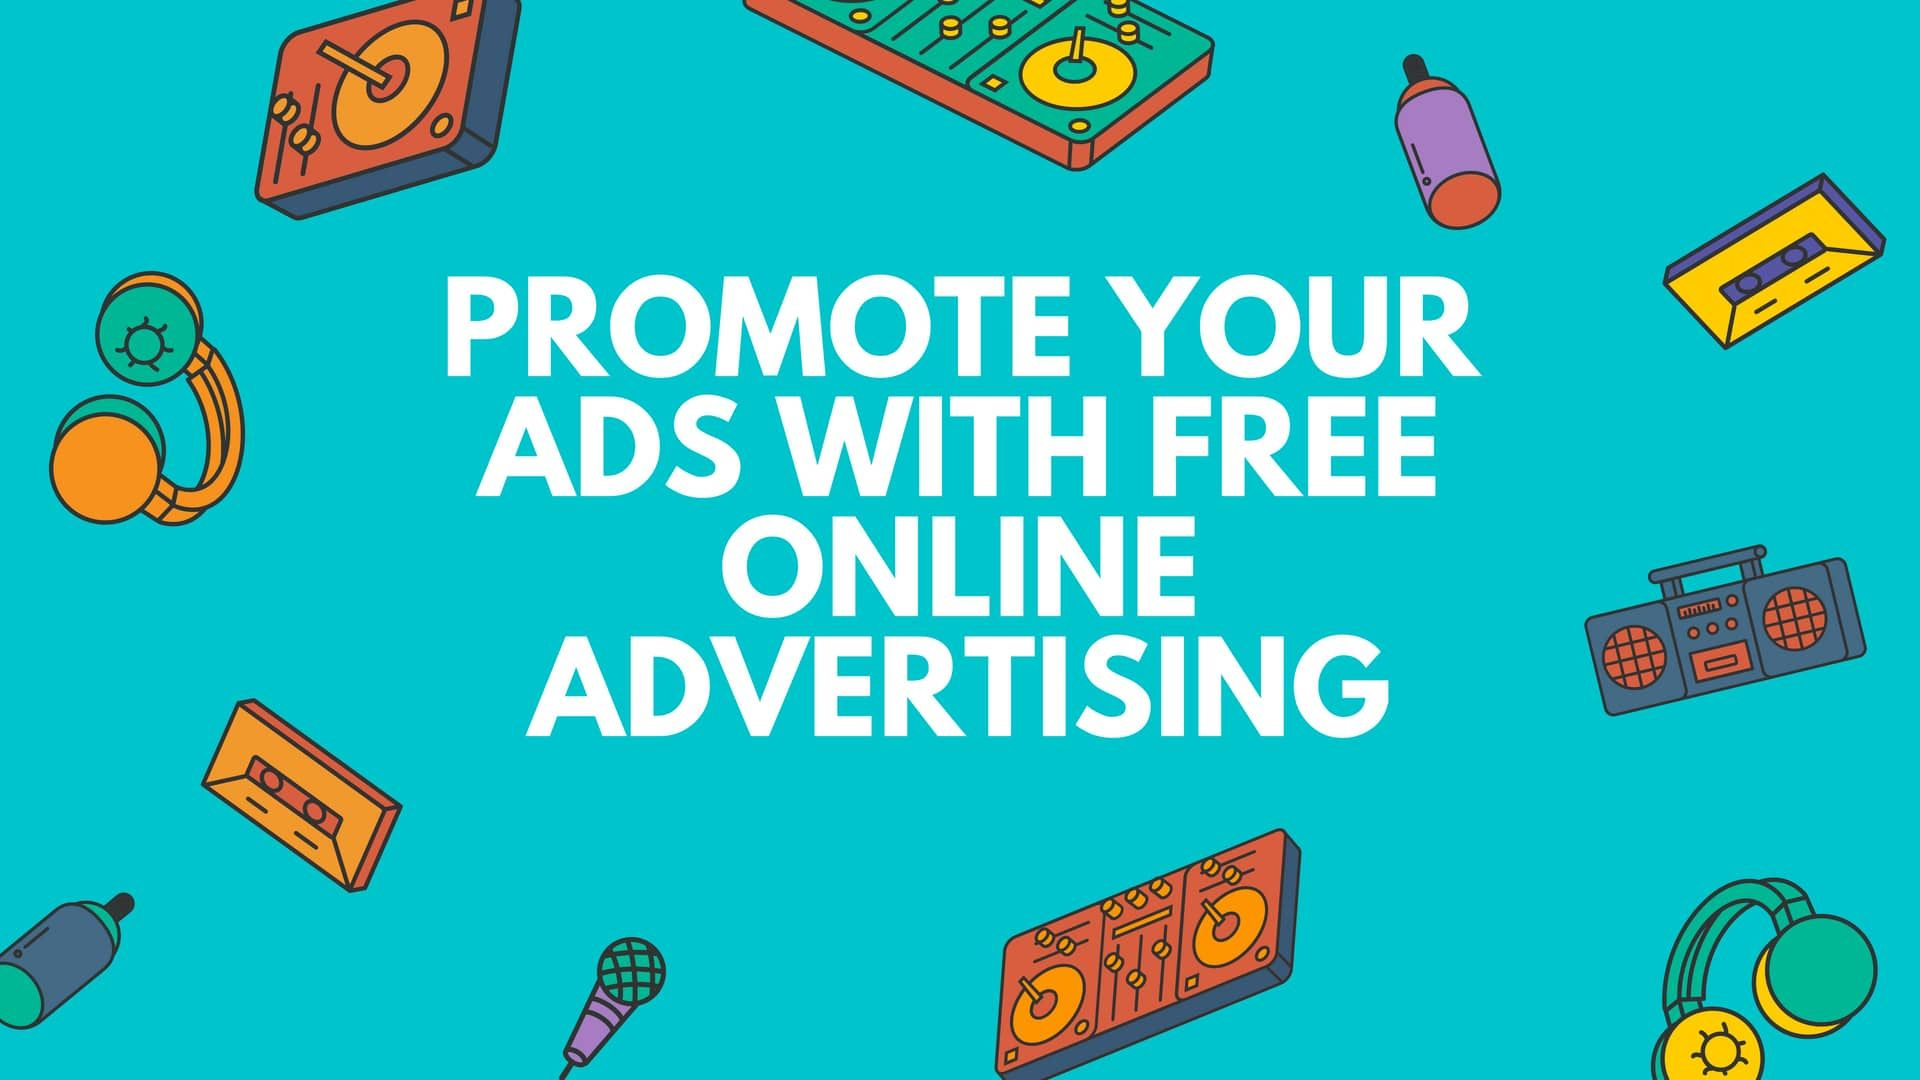 Promote Your Ads With Free Online Advertising | Deactivate ...